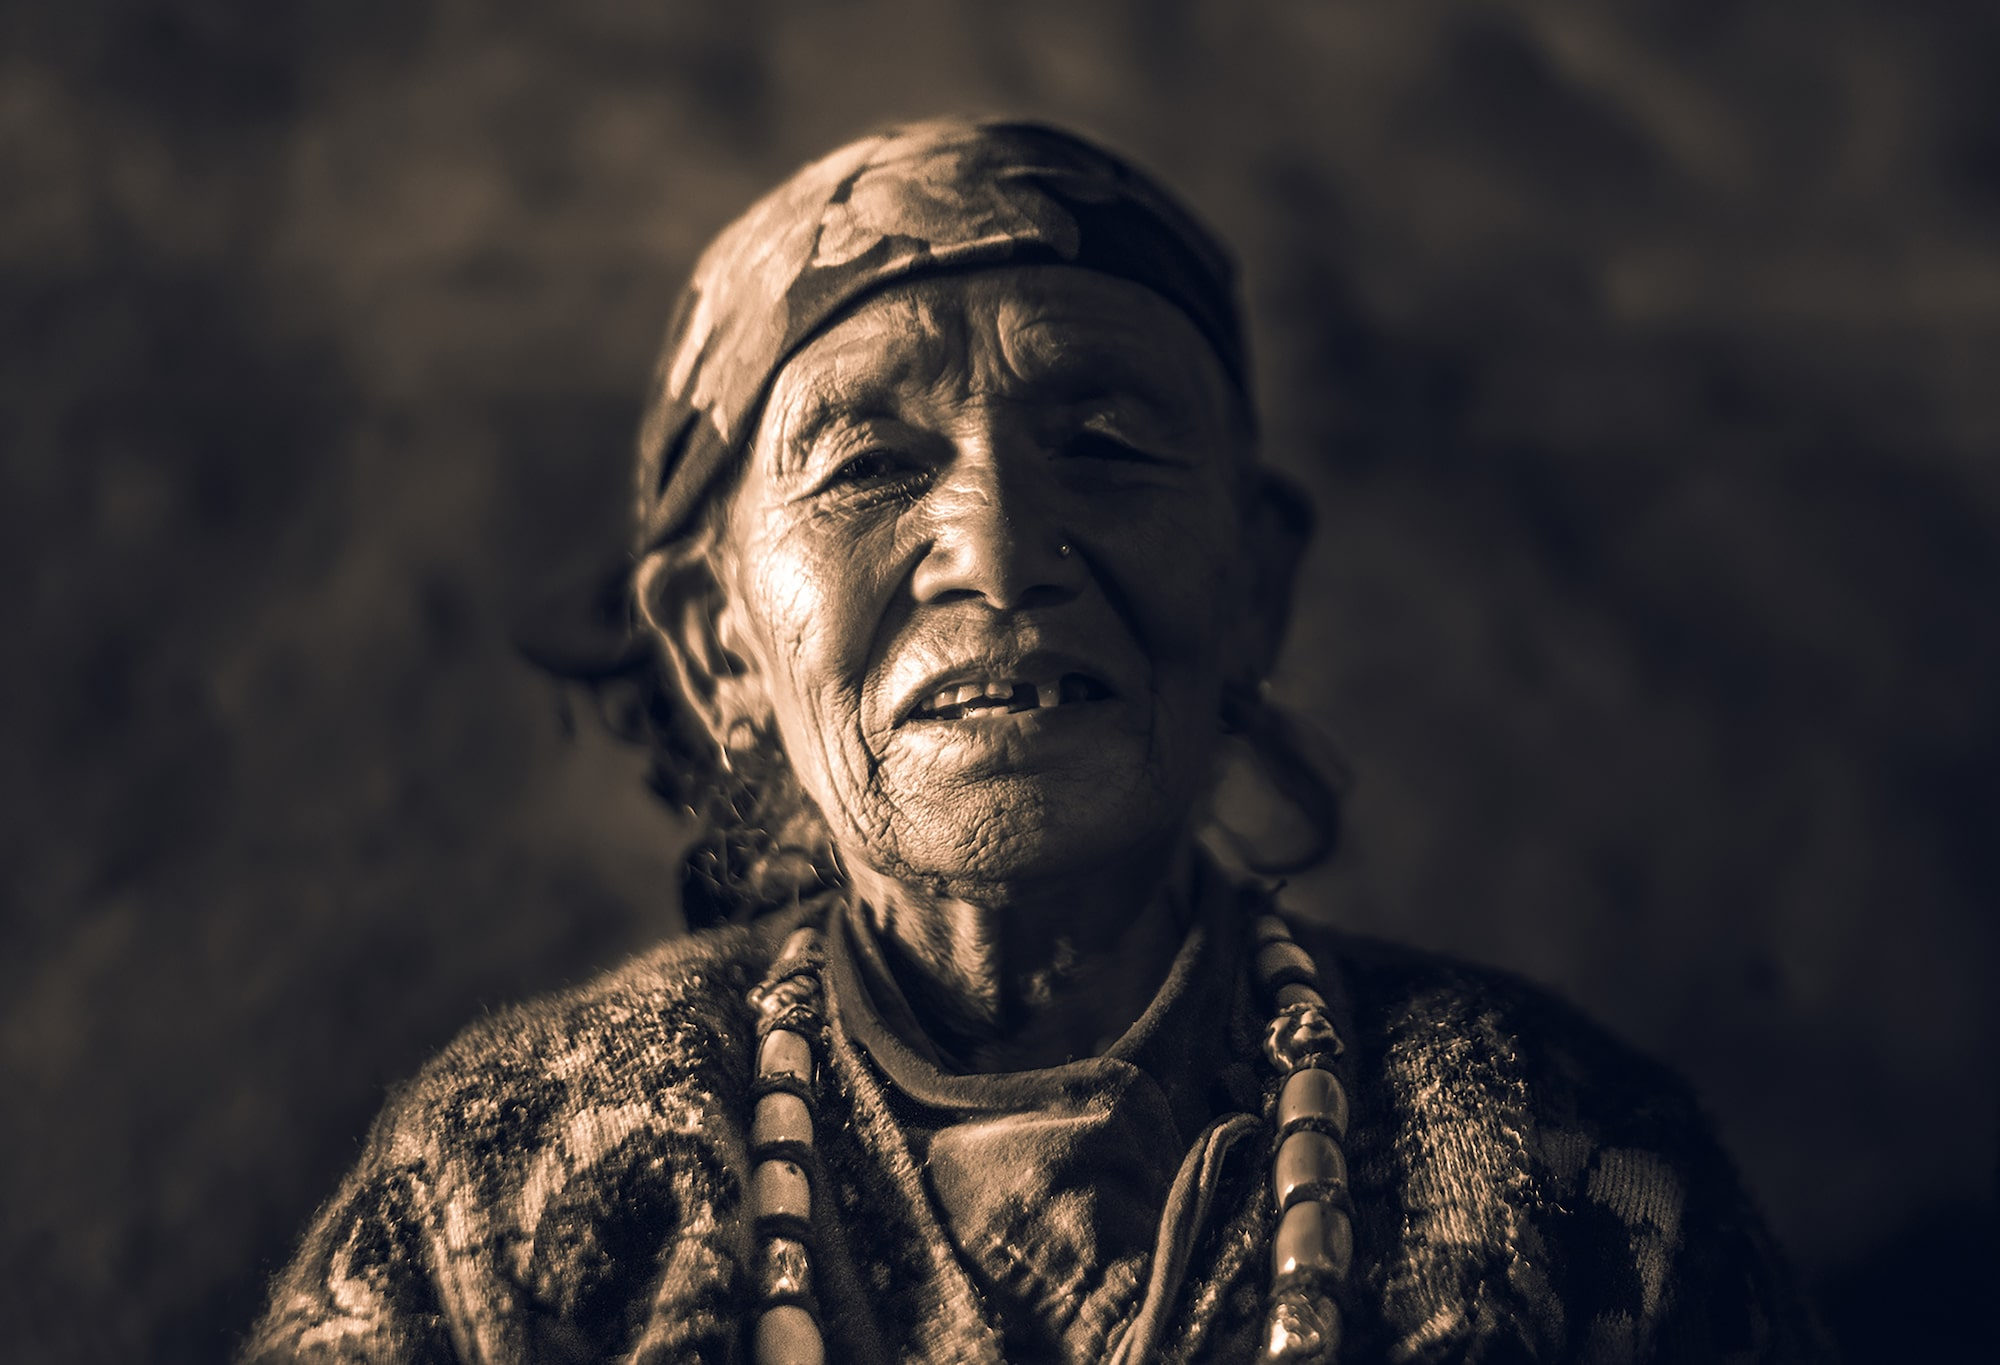 tolis fragoudis sony alpha 7RII portrait of smiling nepalese man